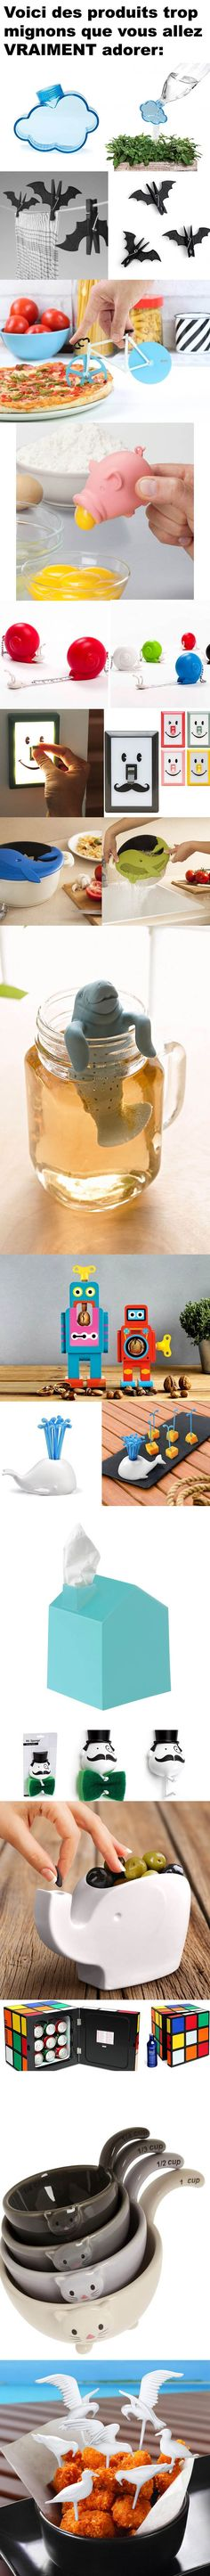 Produits trop mignons High Tech Gadgets, Cool Gadgets, Objet Wtf, Deco Pastel, Take My Money, Cool Inventions, Happy Fun, Pictures Images, Diy Organization